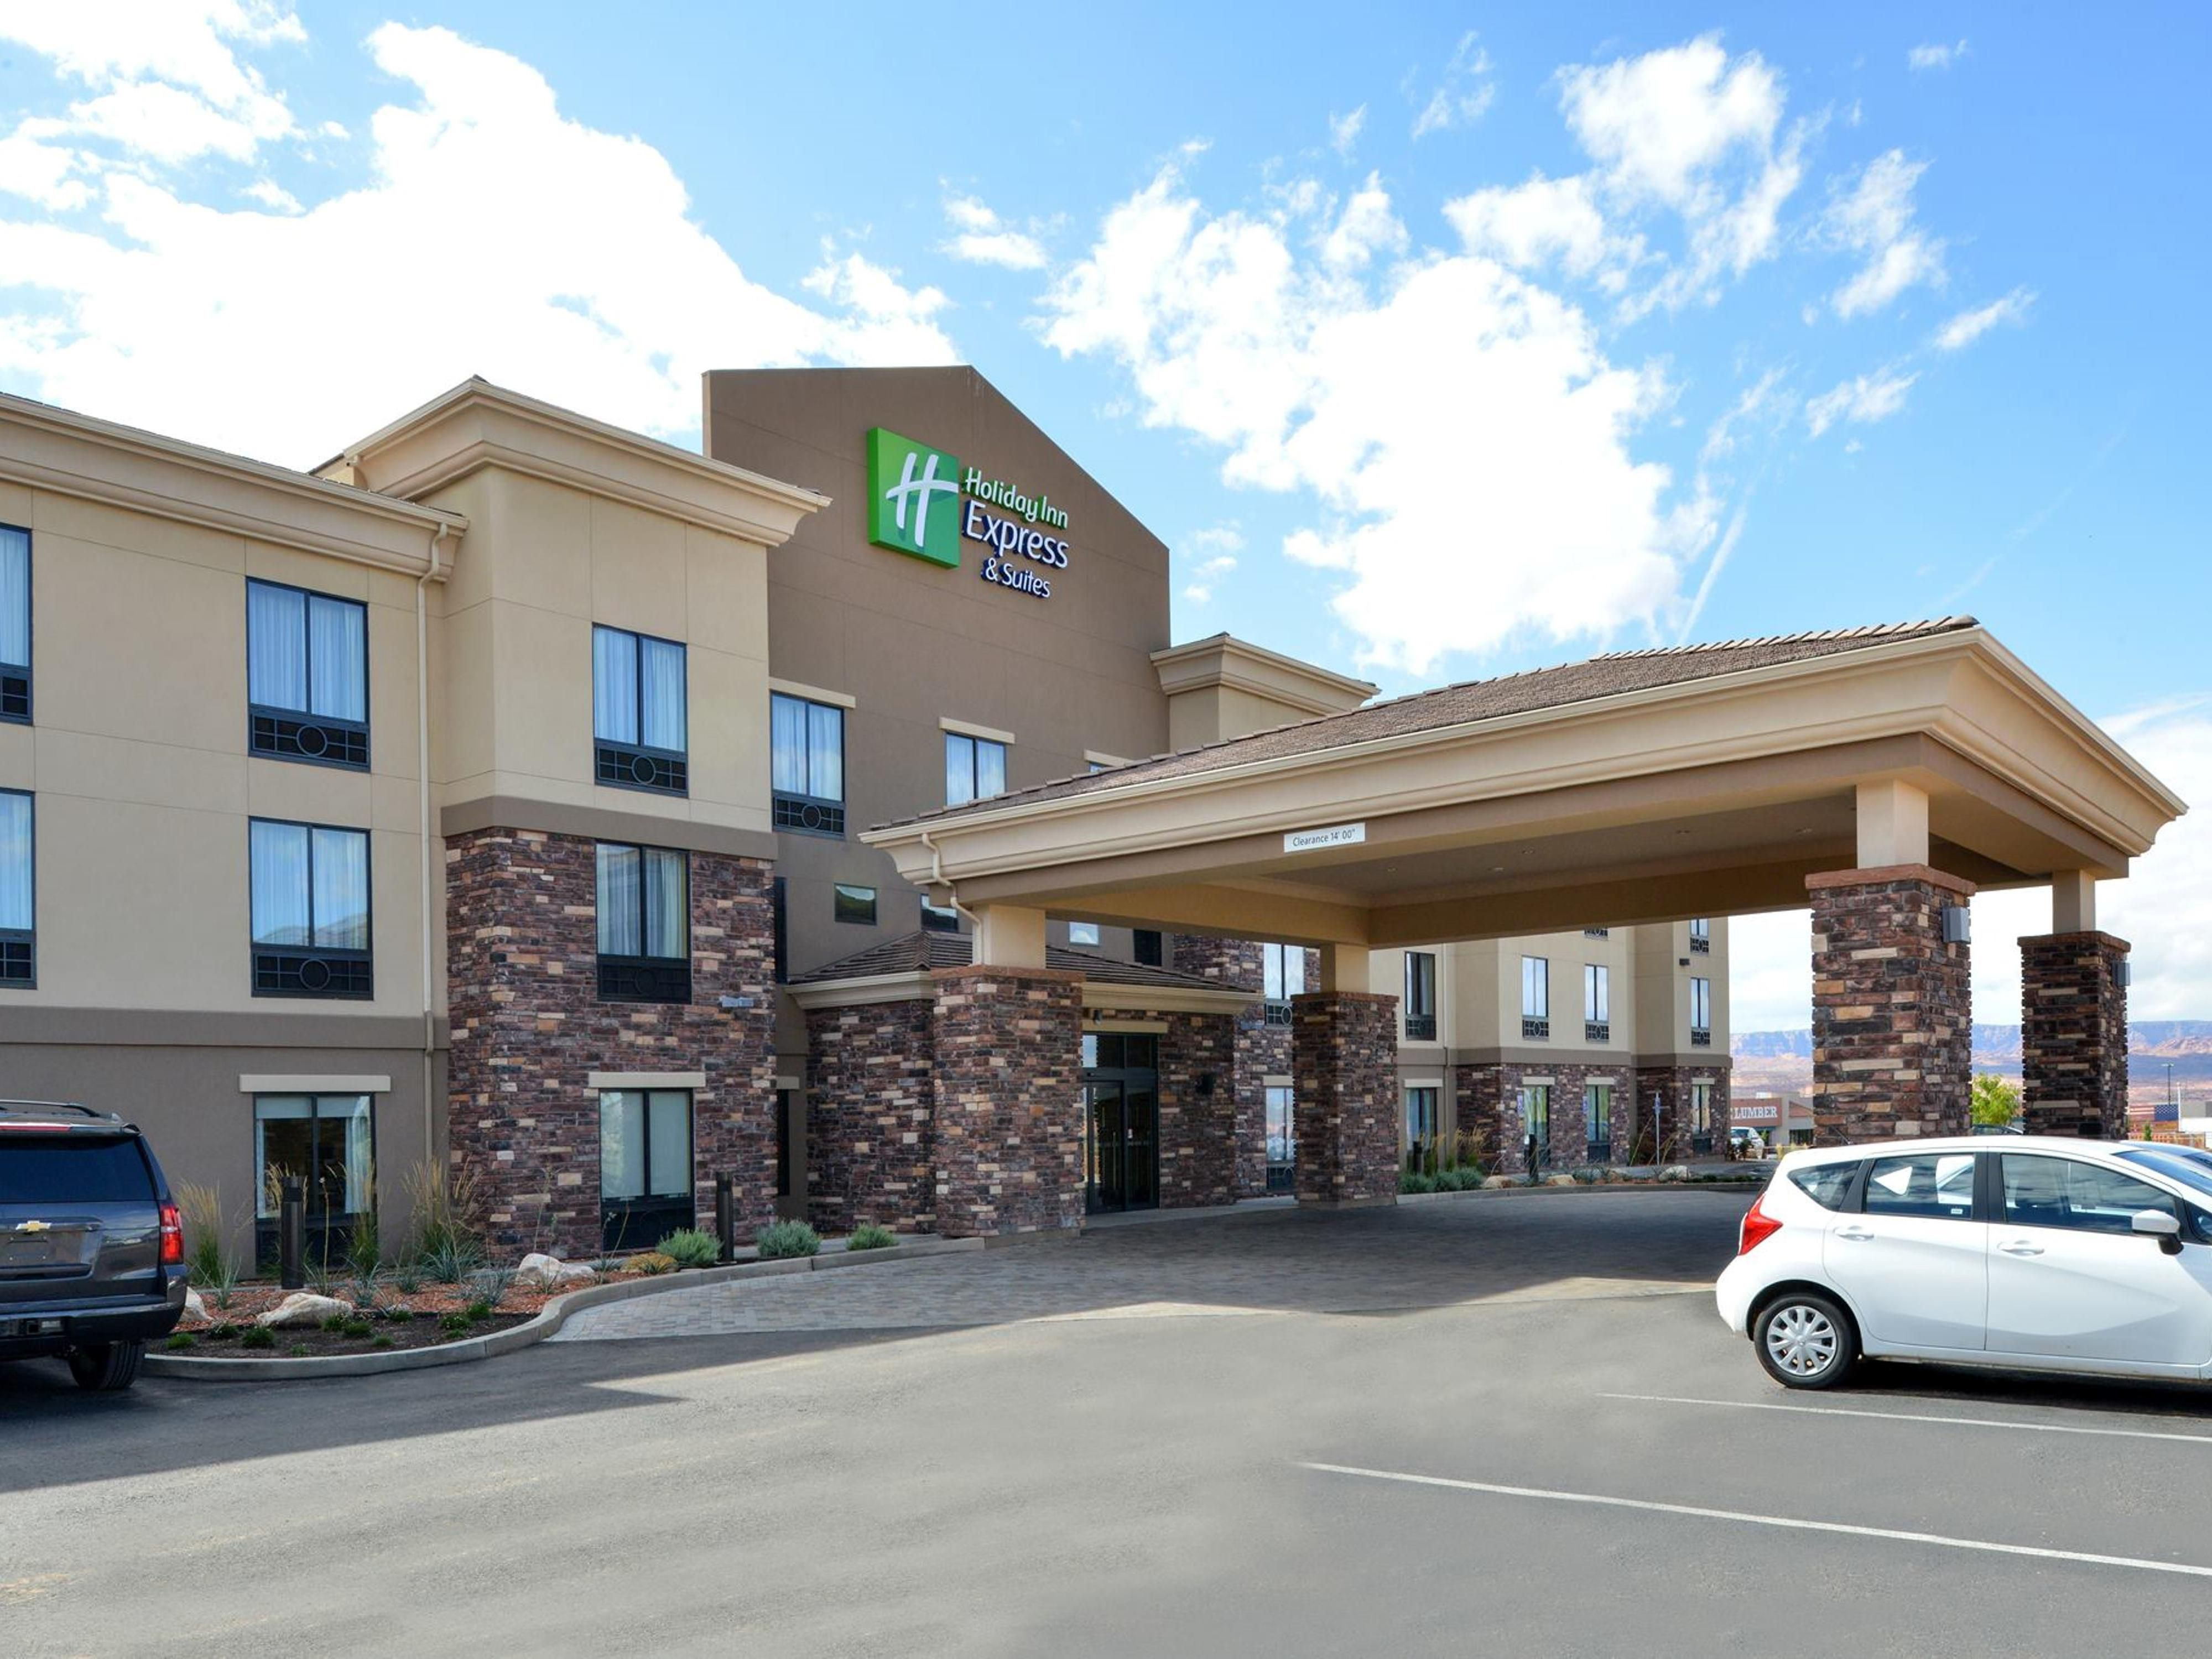 Hotels In The Area Near Me